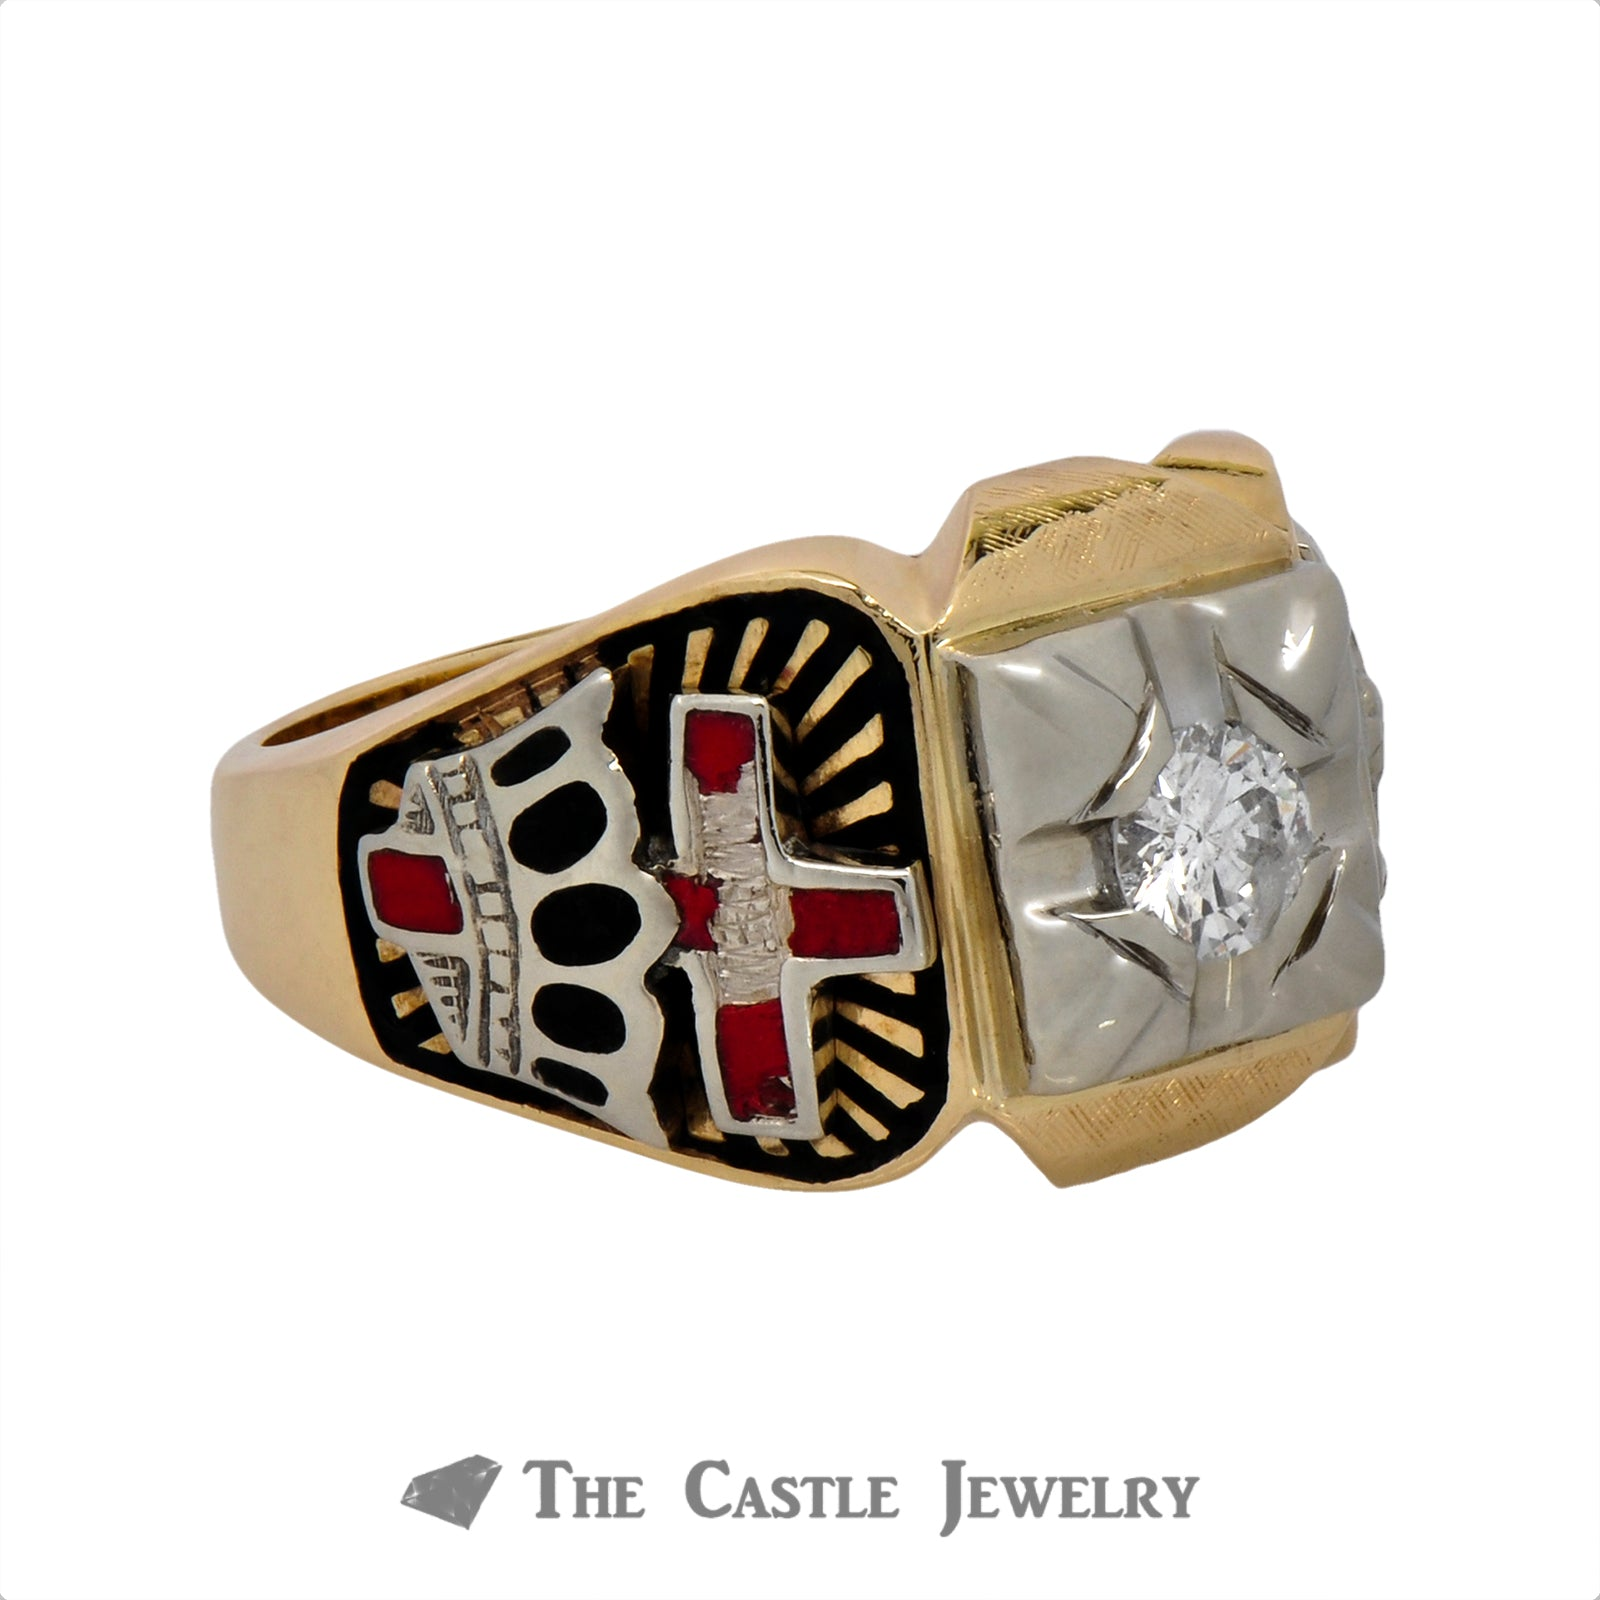 Ancient Order of the Nobles of the Mystic Shrine Ring with Diamond Solitaire-2